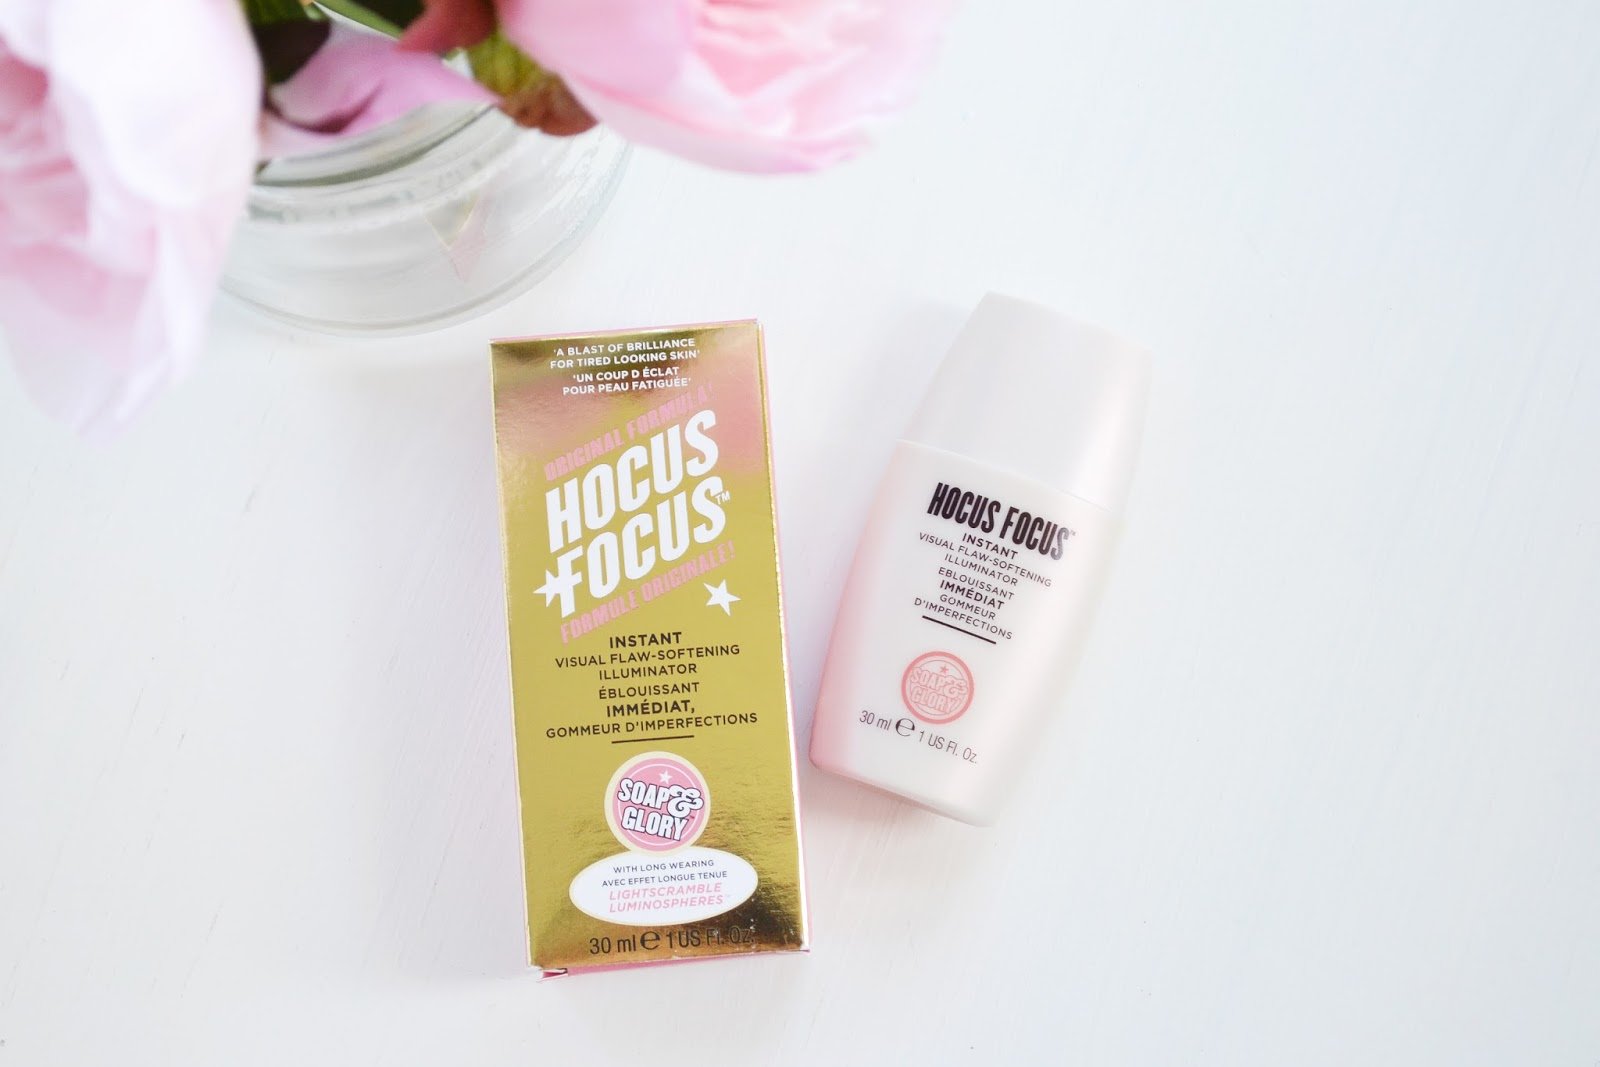 hocus focus soap and glory